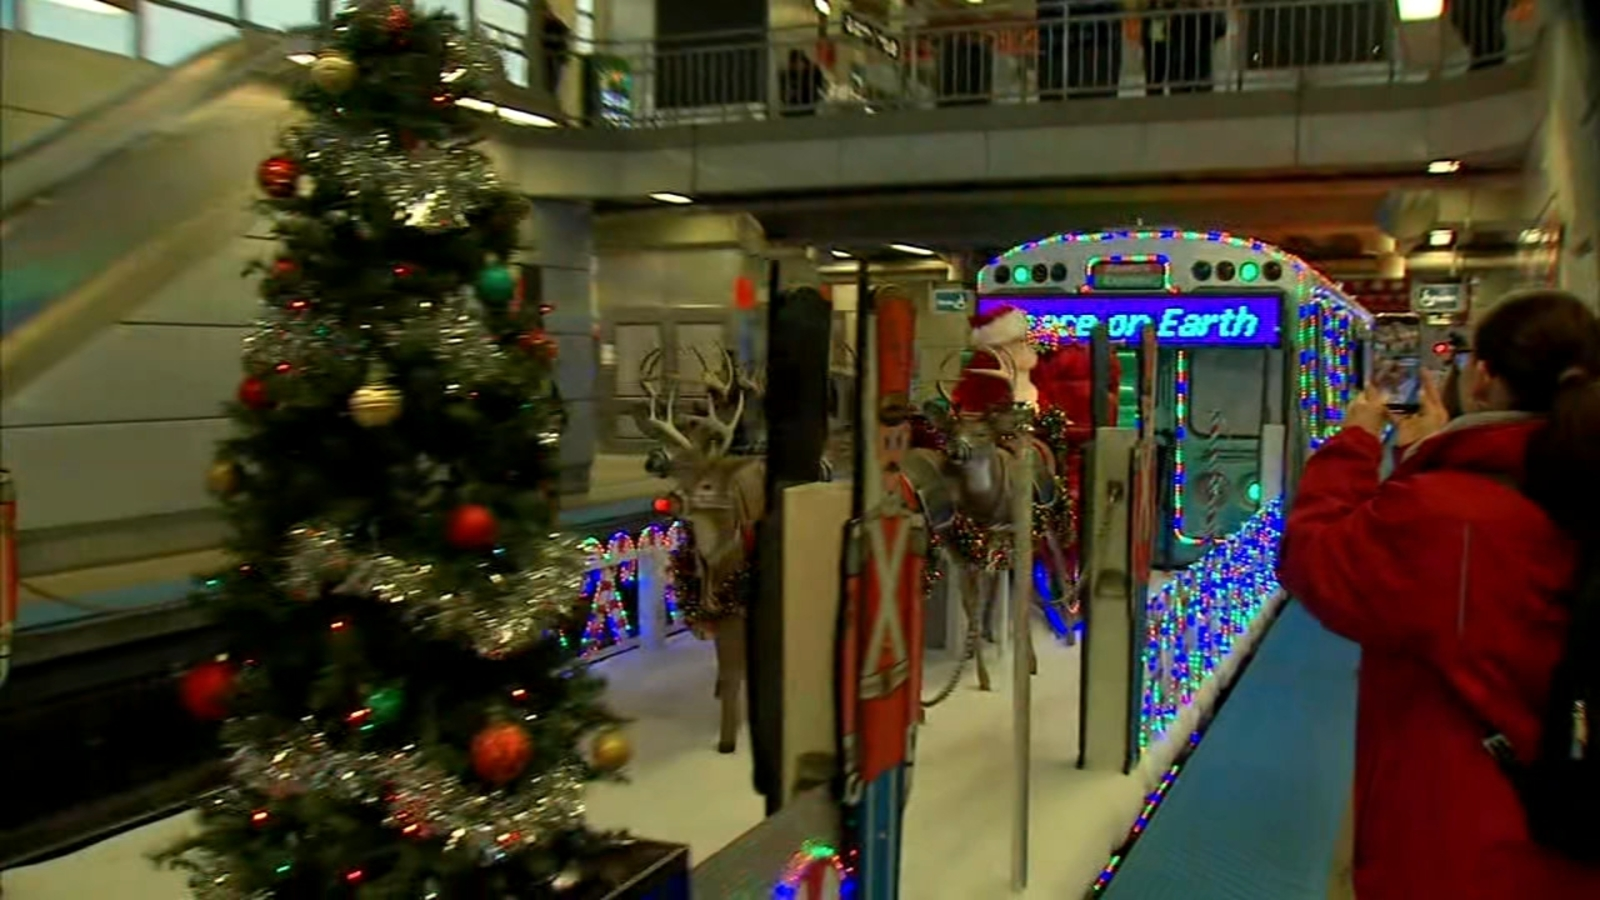 Cta Holiday Train Bus Schedule 2020 See When Santa Rides Into Your Chicago Neighborhood Internewscast